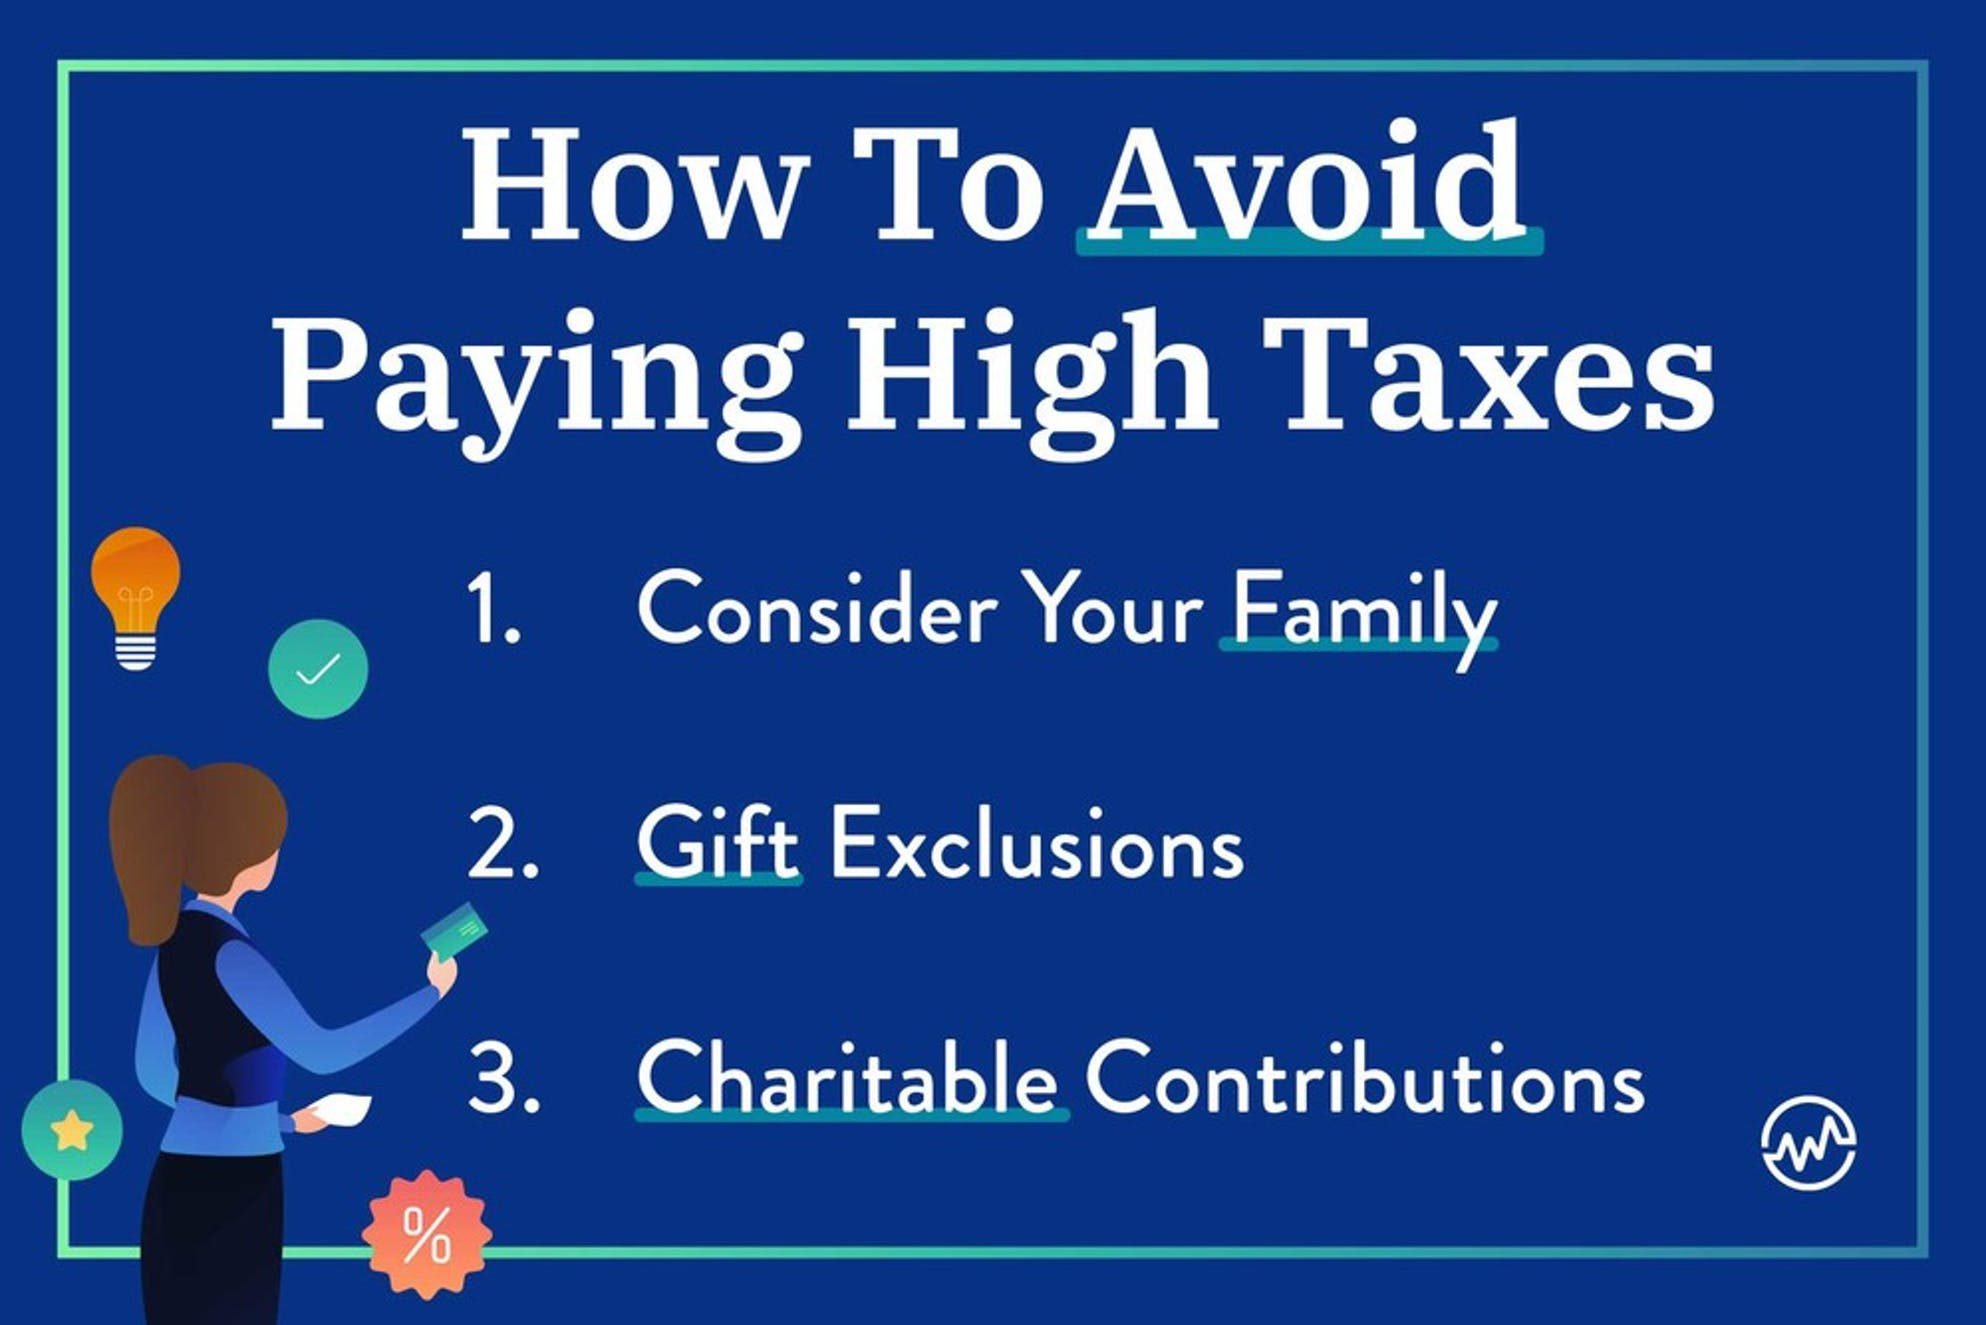 How to avoid paying high taxes by using tax strategies